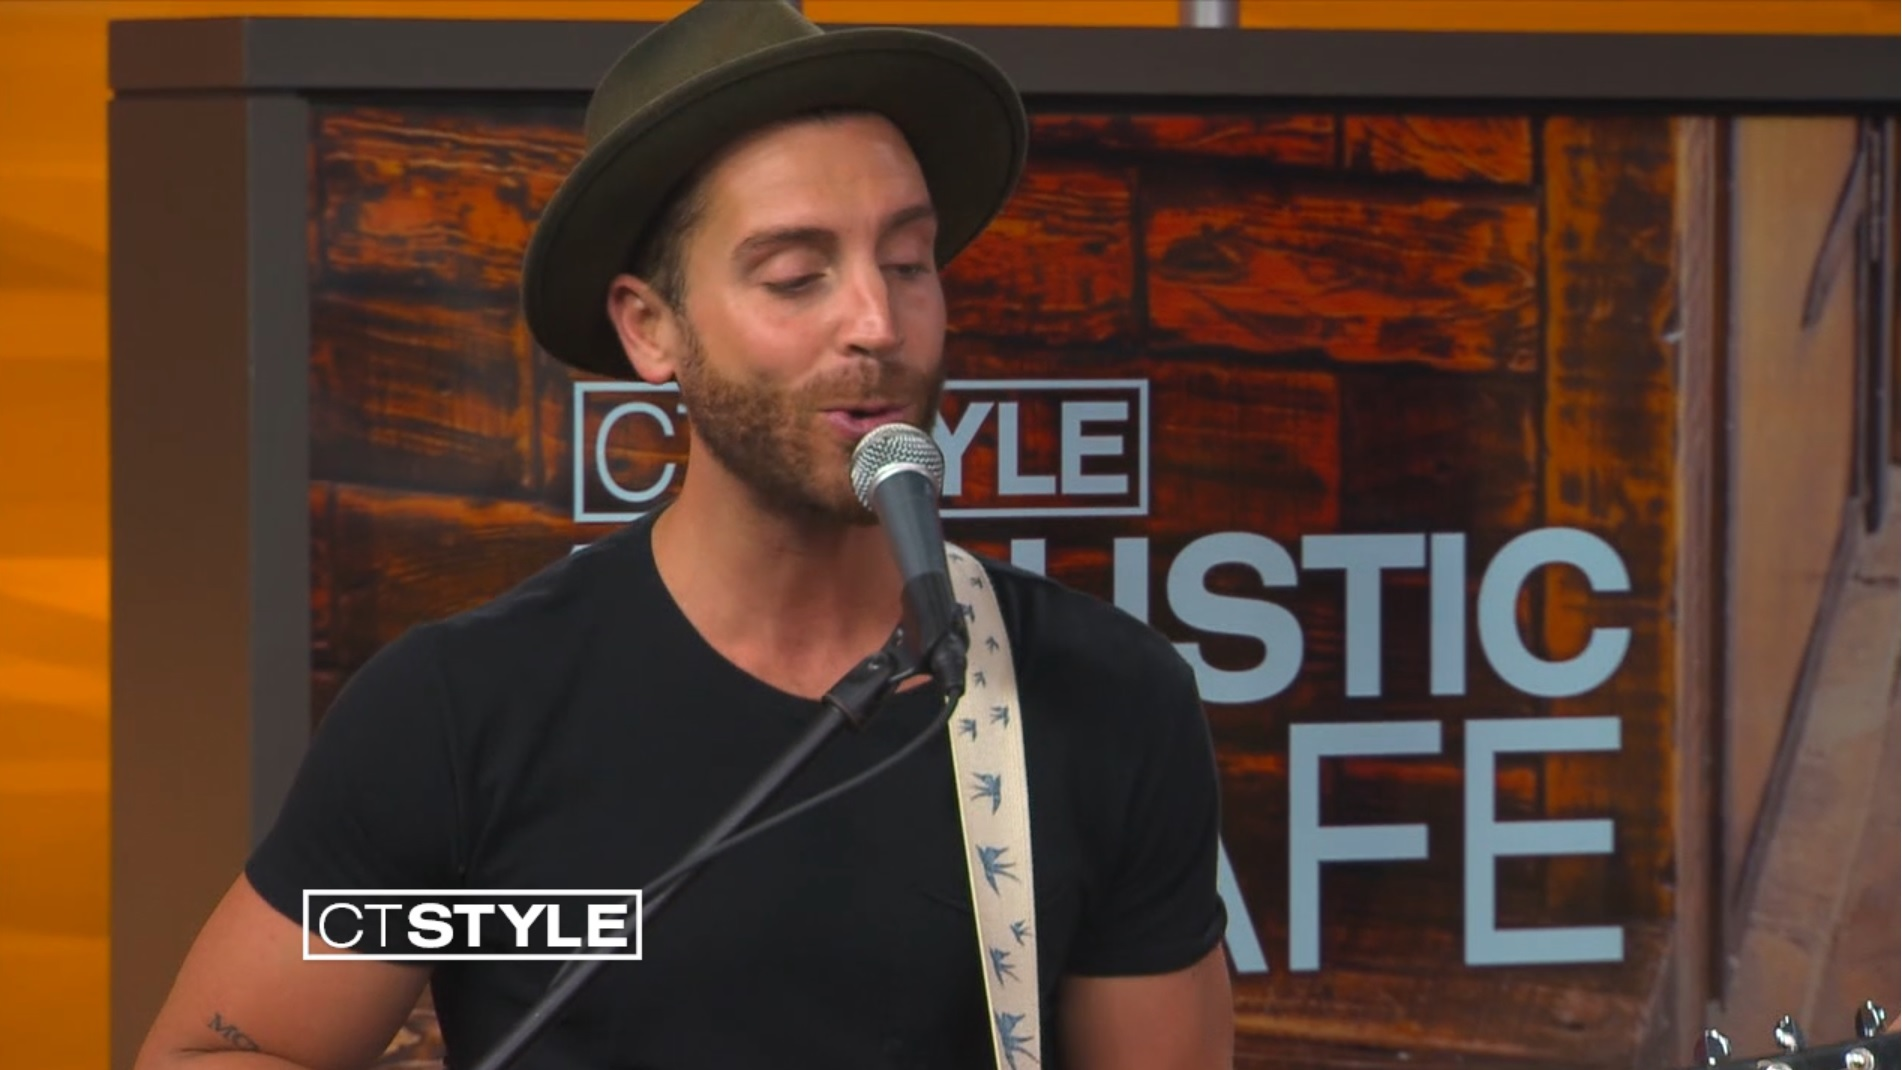 Nick Fradiani Performs Acoustic of 'EMPIRE' and Gives Advice to American Idol Hopefuls